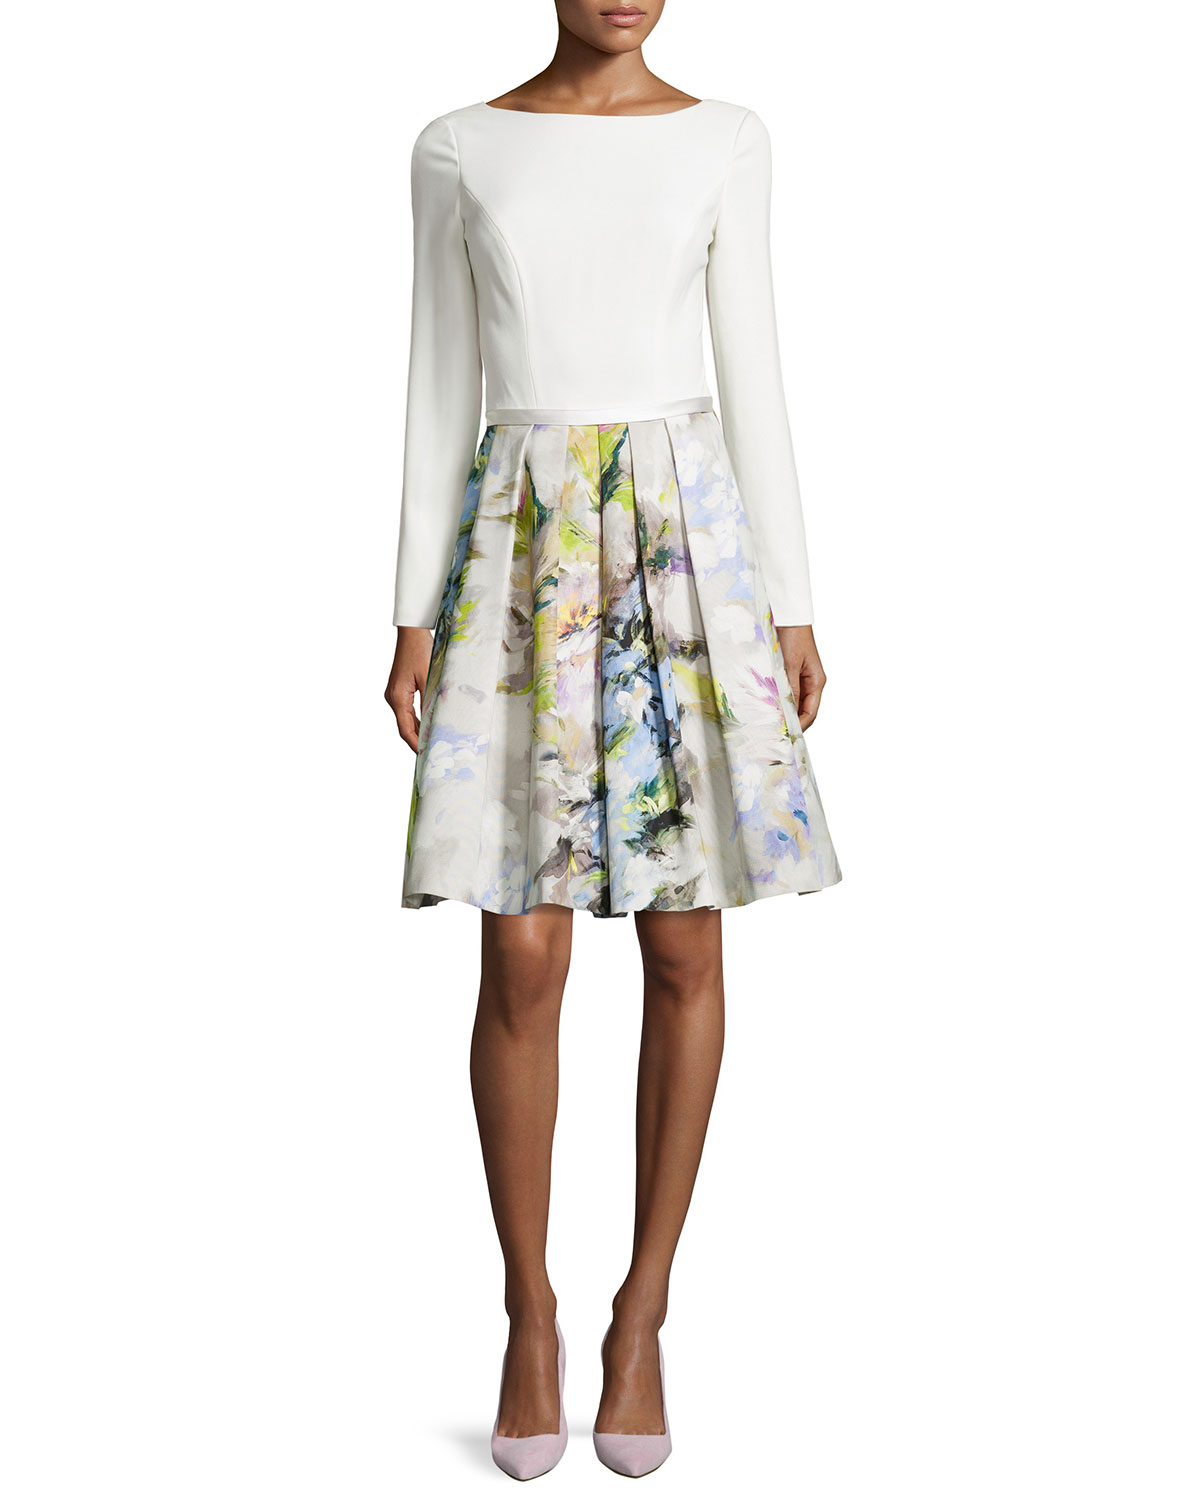 Lyst - Theia Long-sleeve Floral Pleated-skirt Dress